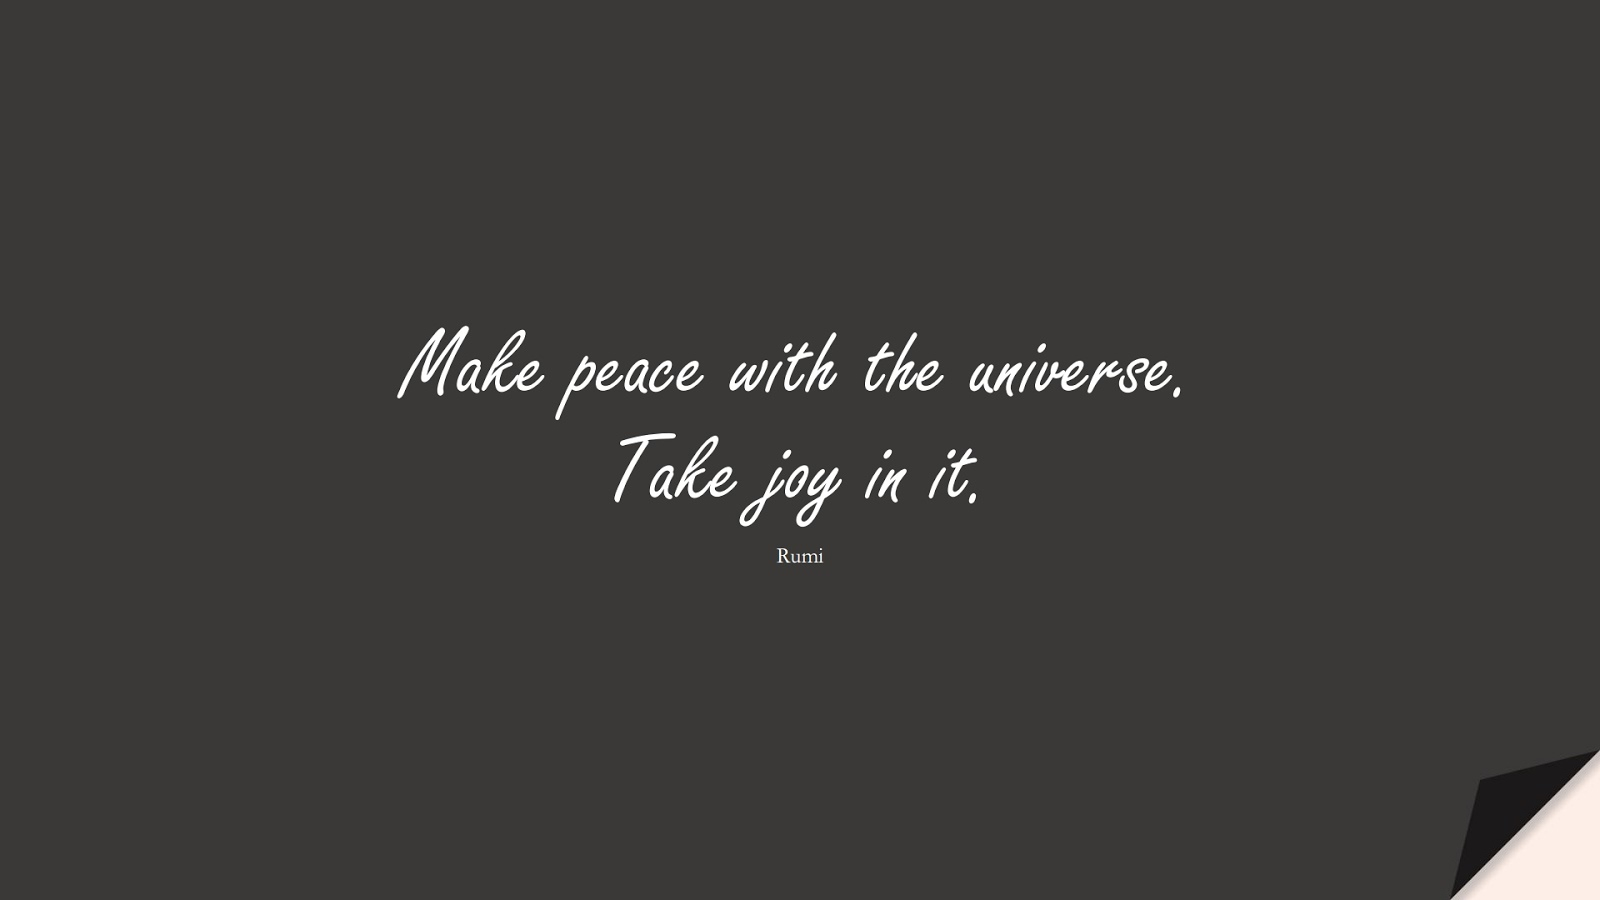 Make peace with the universe. Take joy in it. (Rumi);  #RumiQuotes